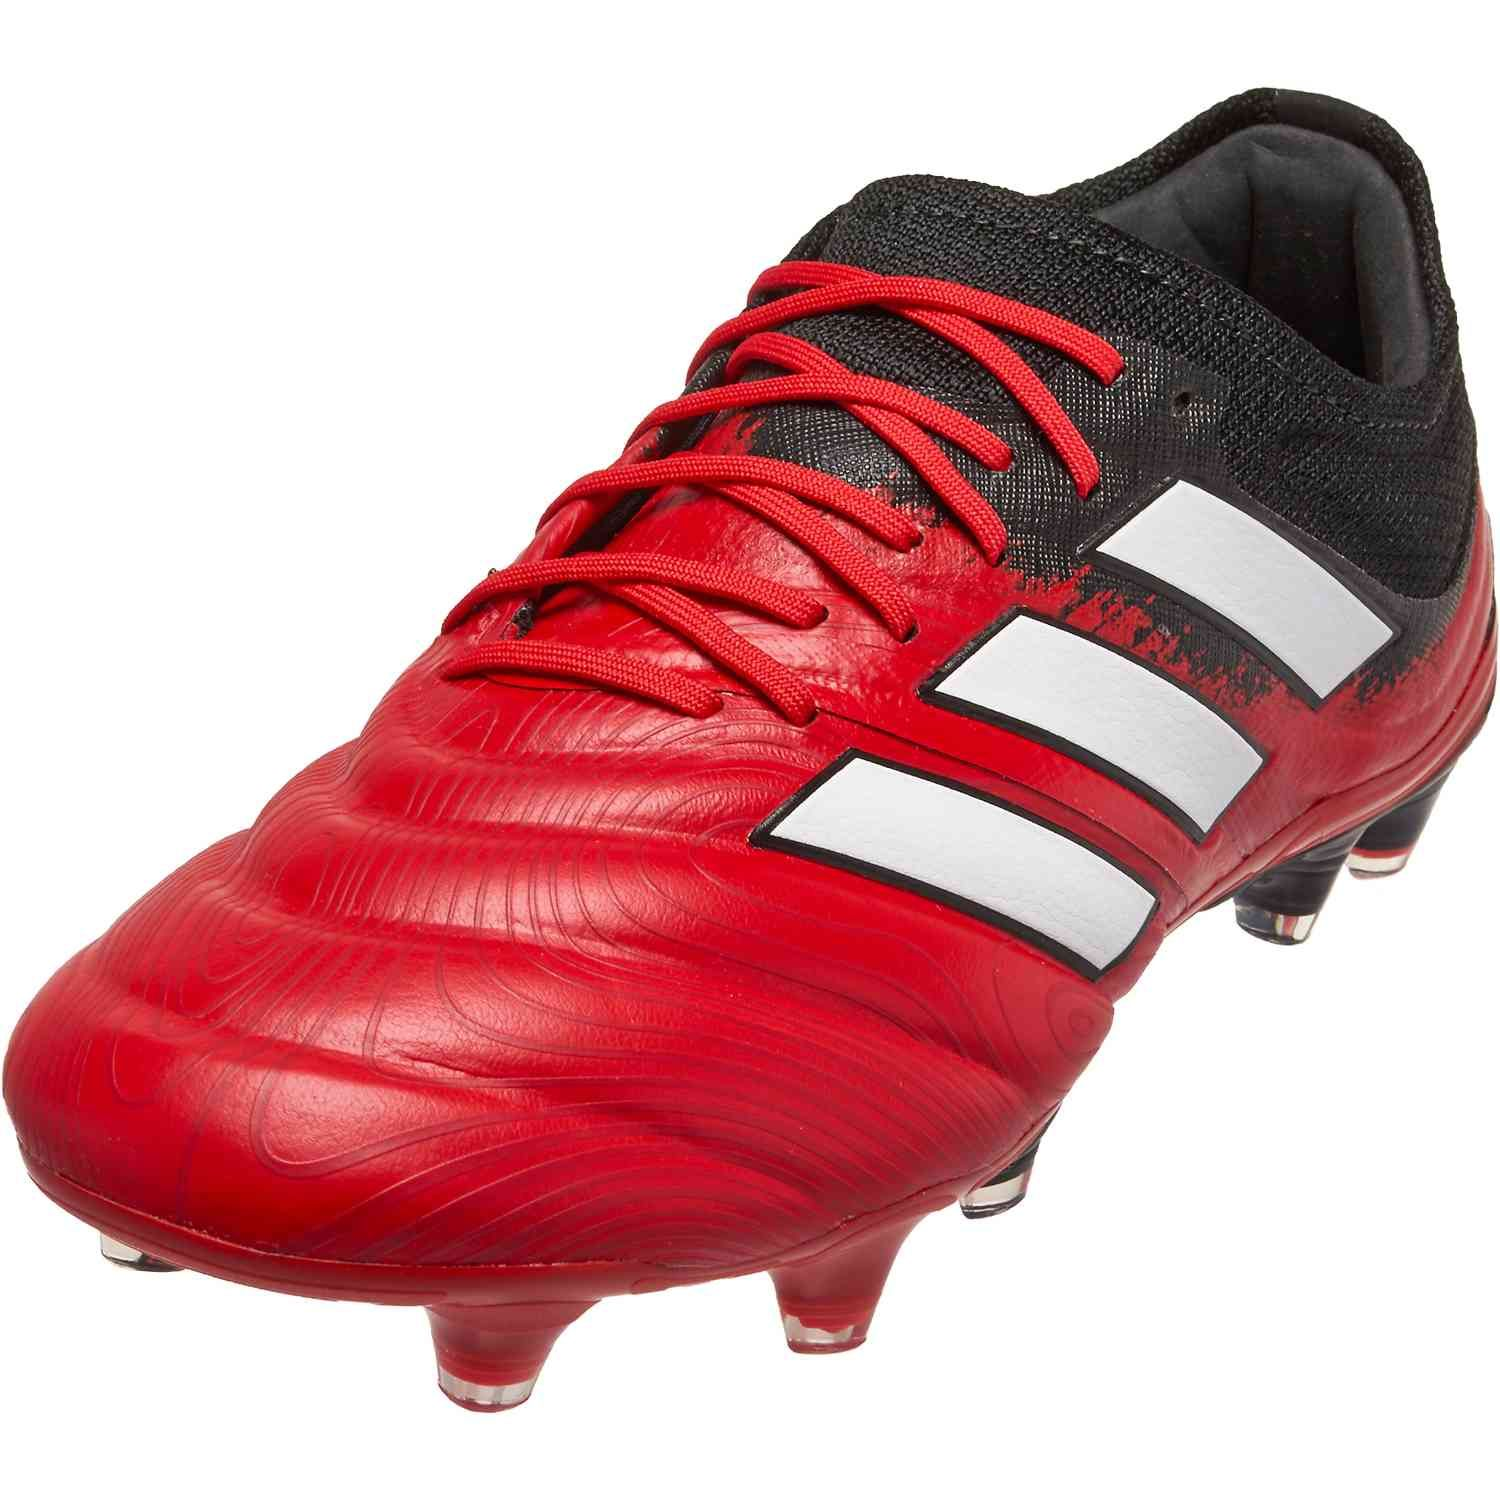 Adidas Copa 20 1 Fg Mutator Pack In 2020 Adidas Sport Shoes Cool Cars